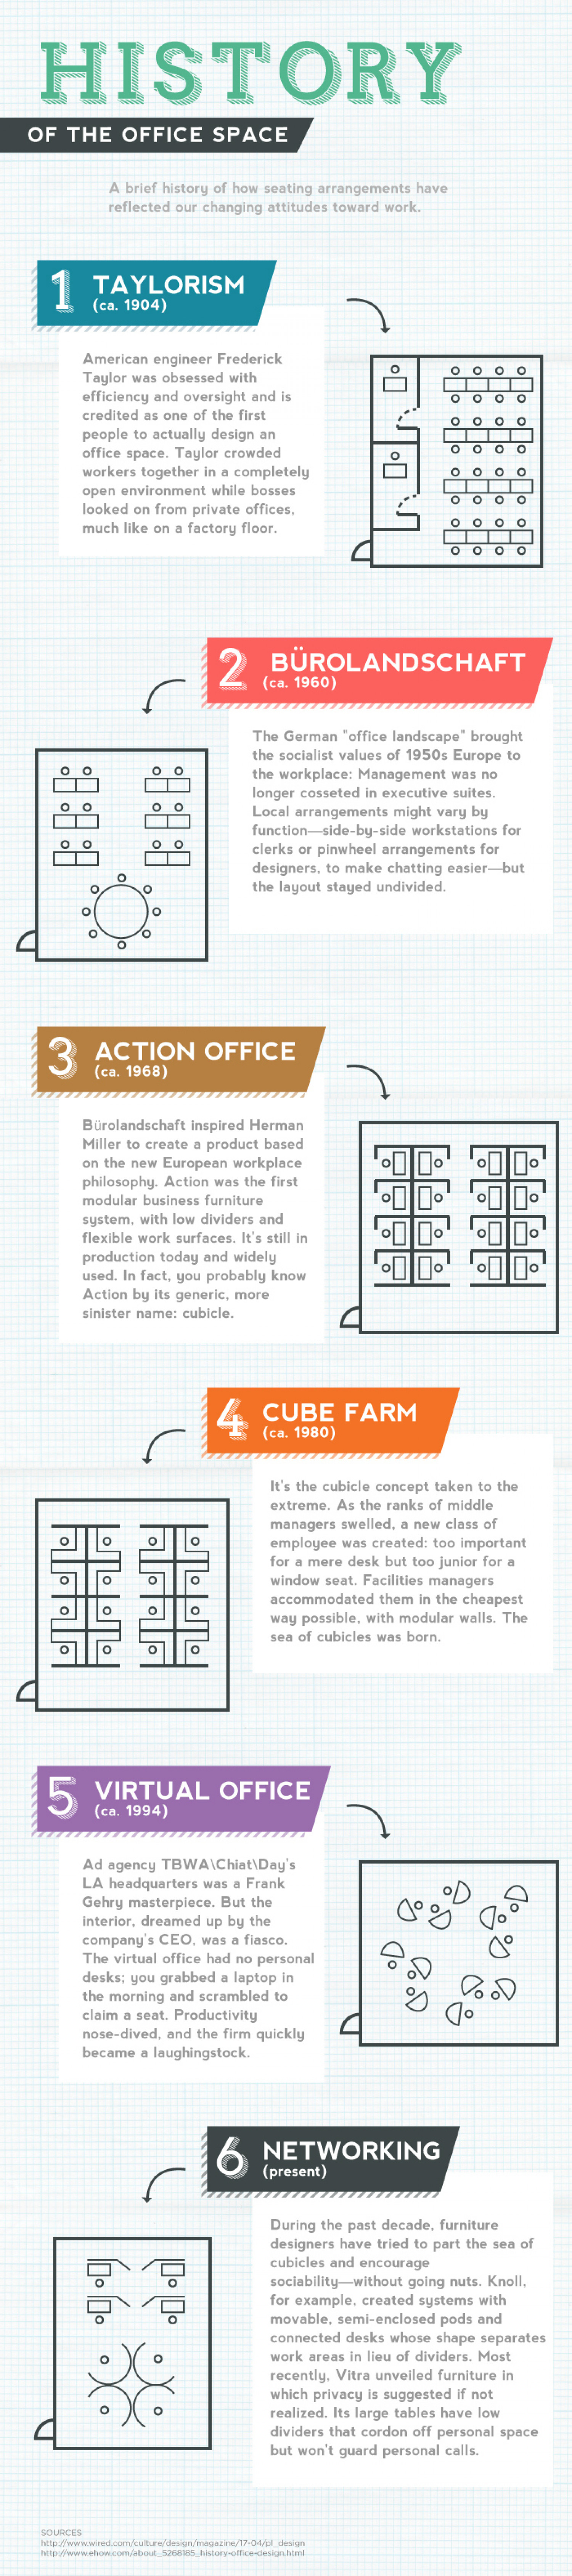 Anatomy of the Perfect Office Space - History  Infographic